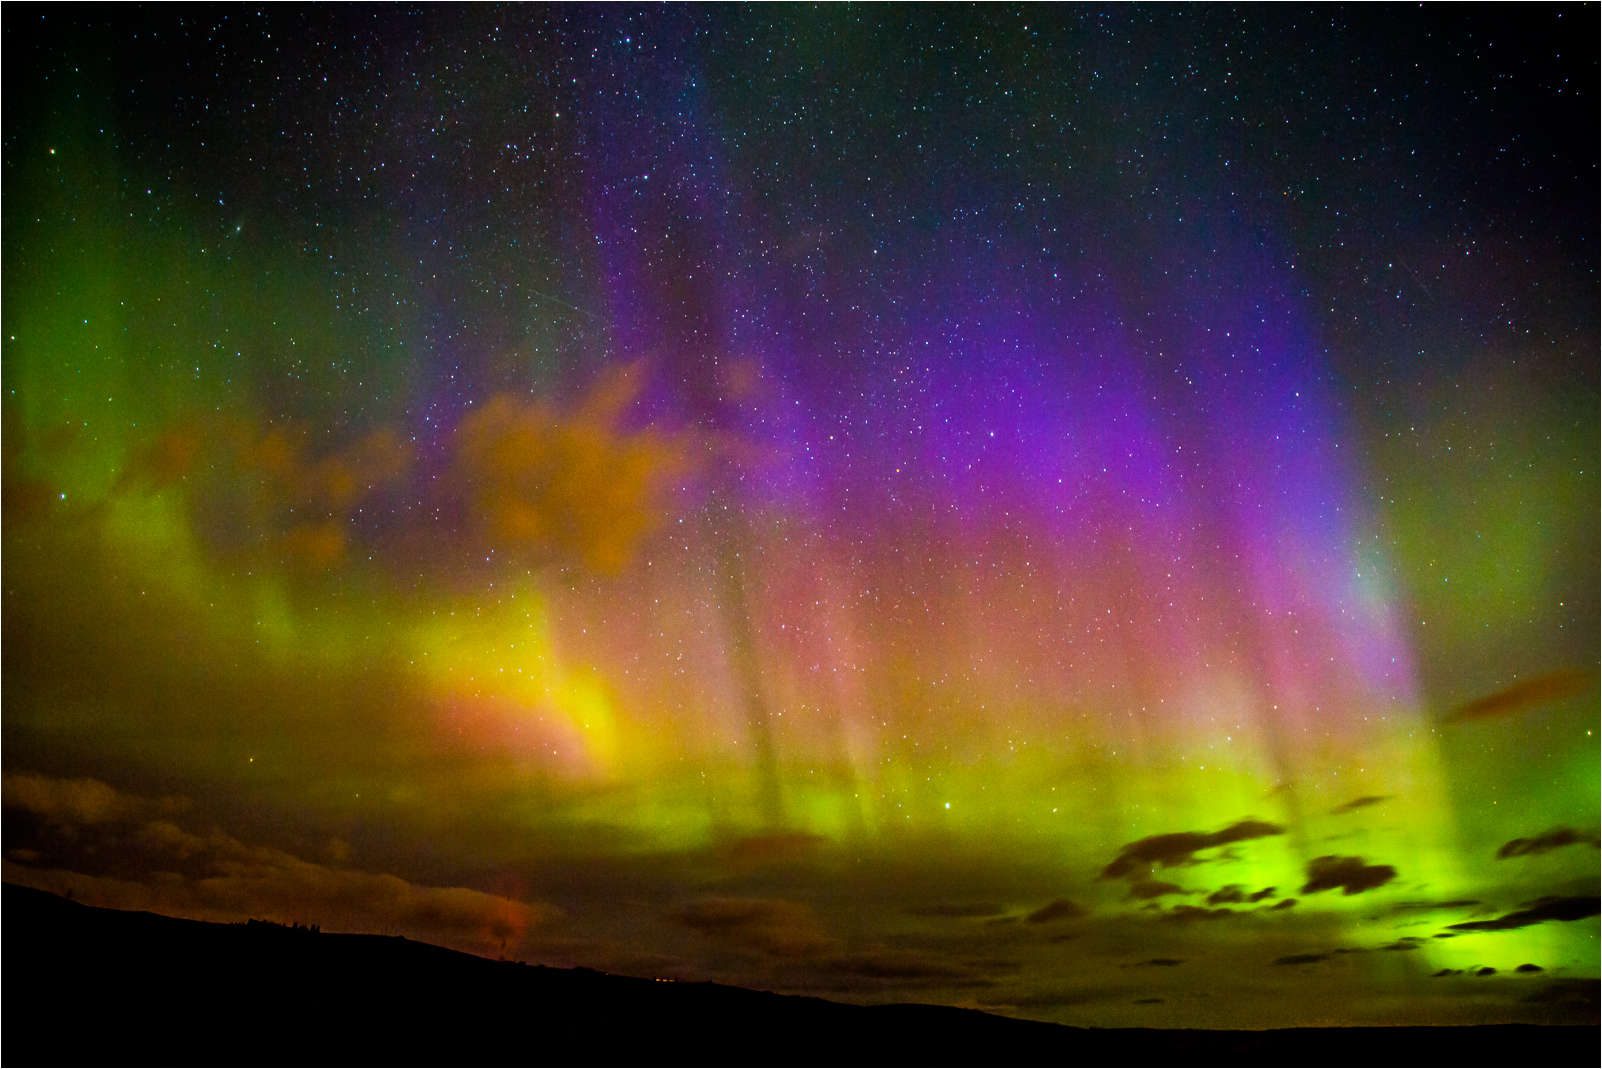 Aurora Borealis: What Causes the Northern Lights & Where to See Them